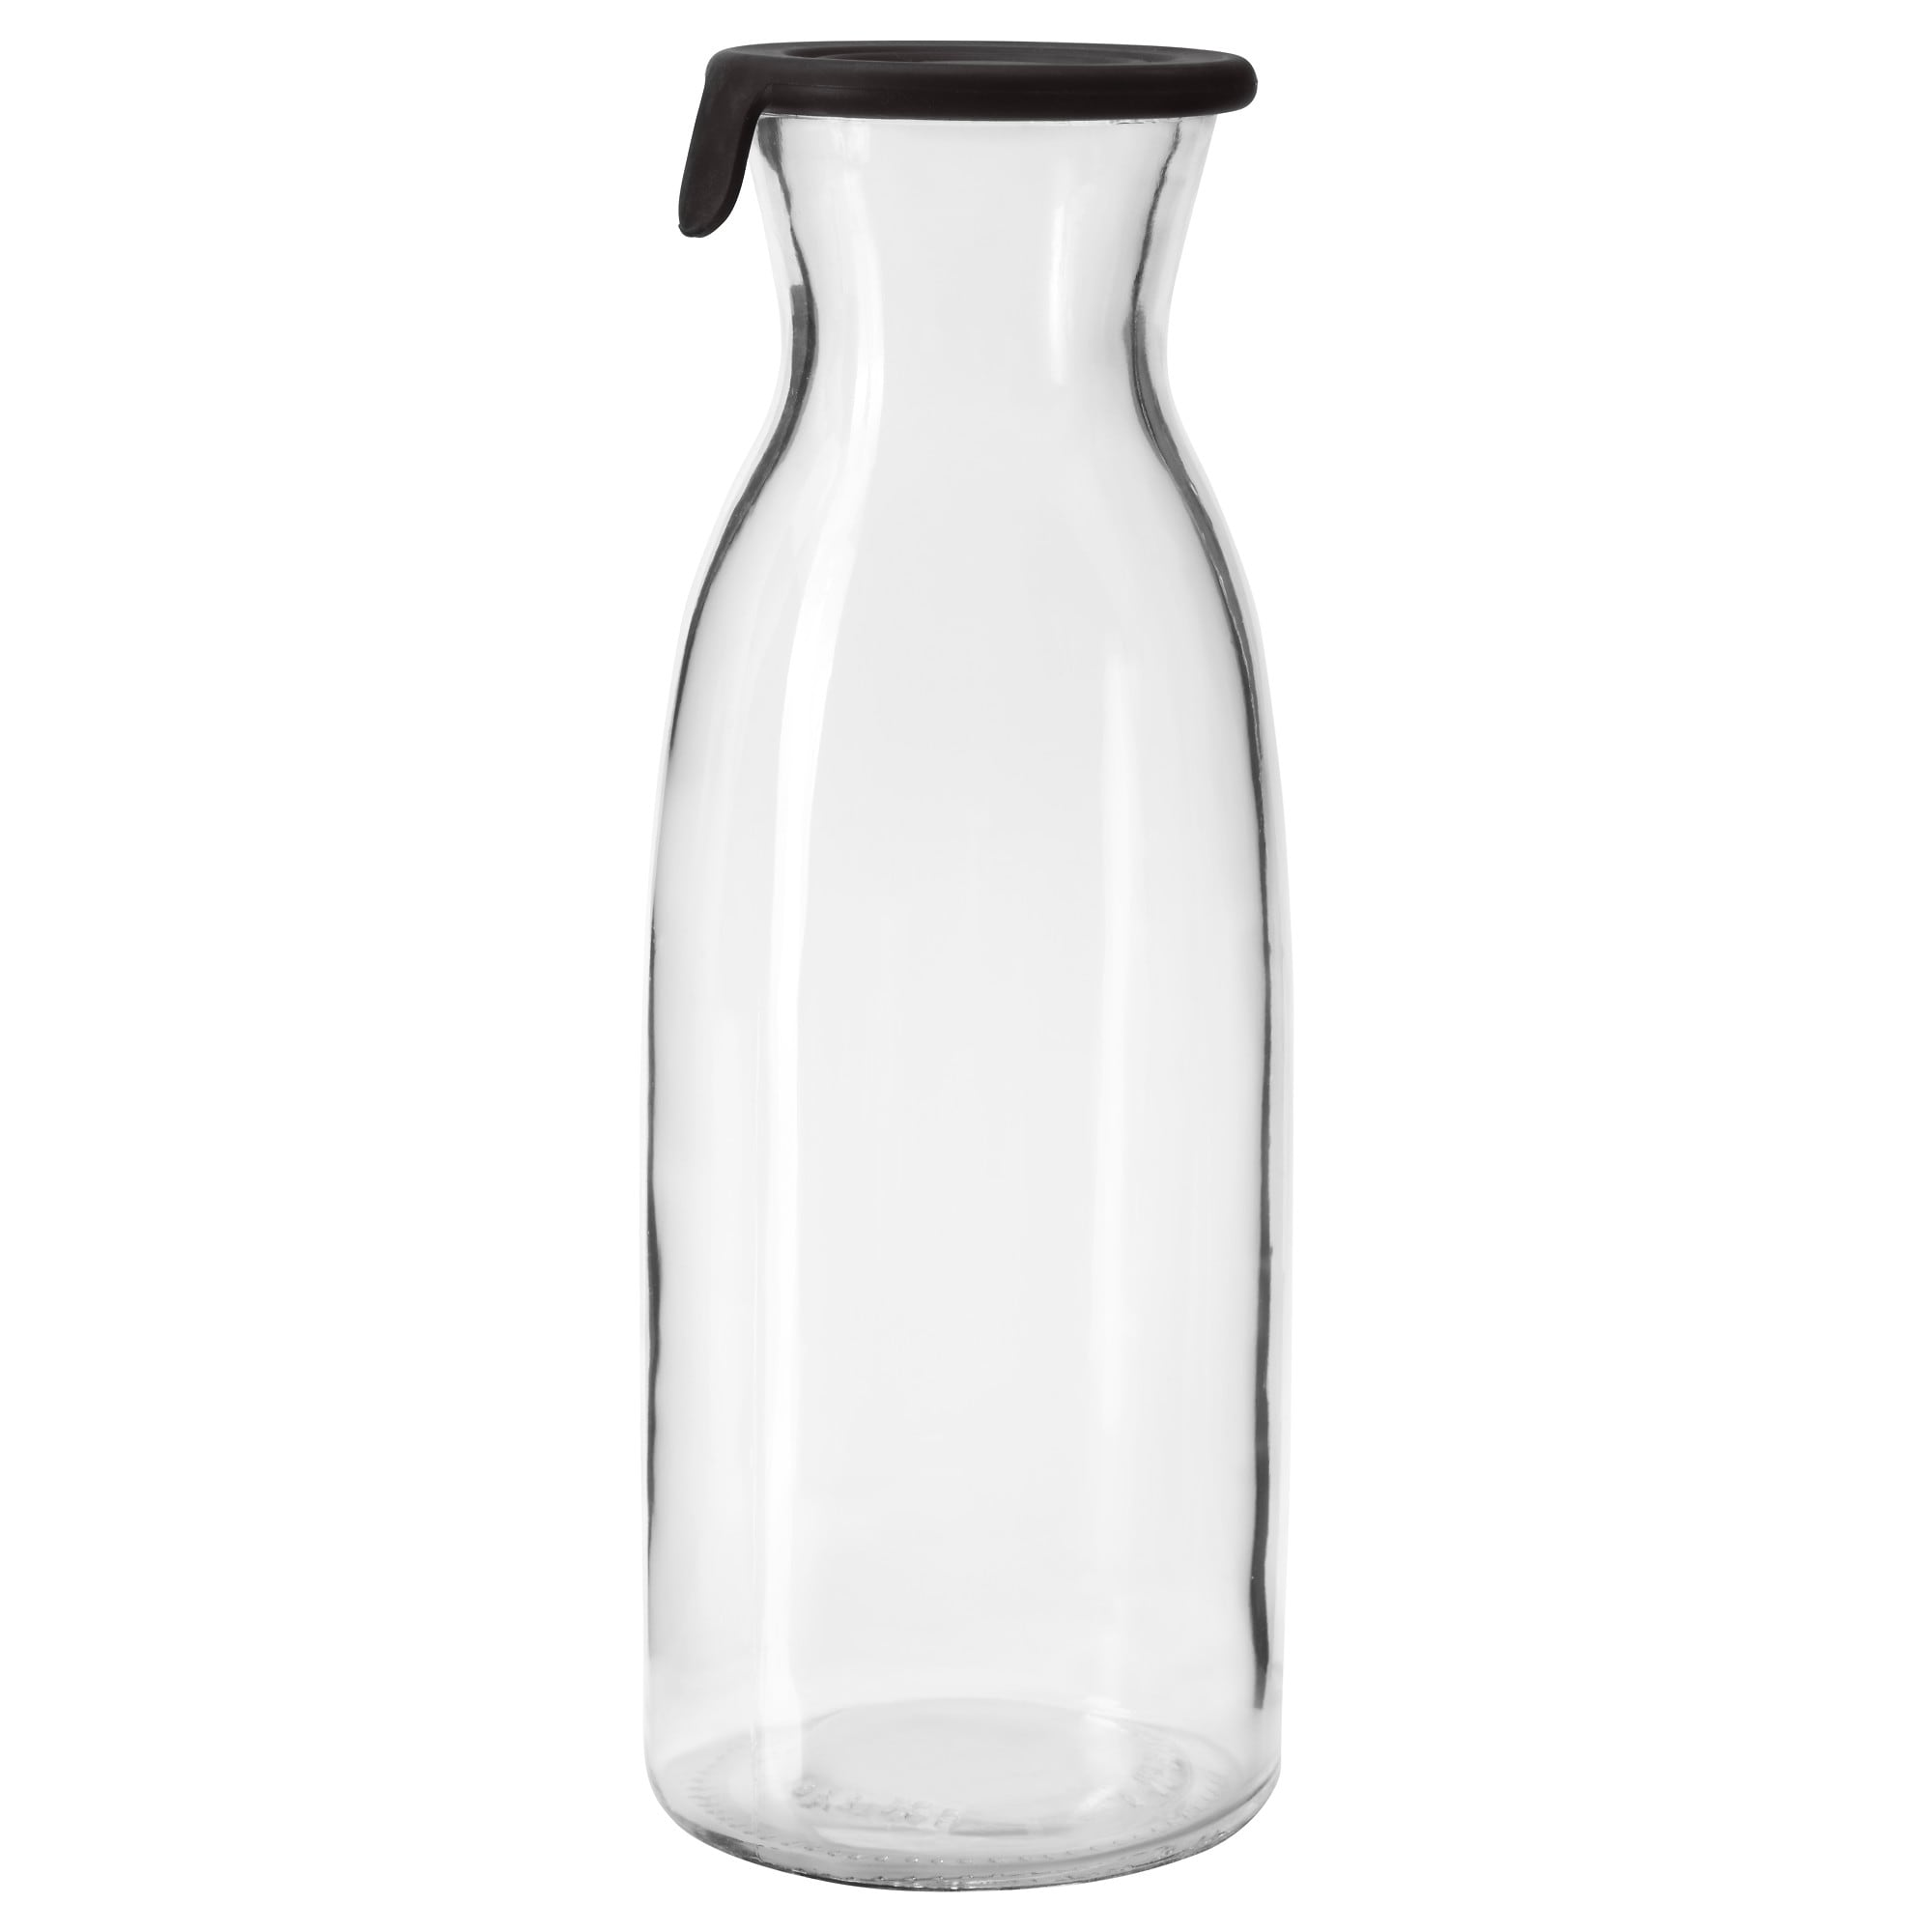 Vardagen Carafe With Lid Clear Glass Ikea Clear Glass Carafe